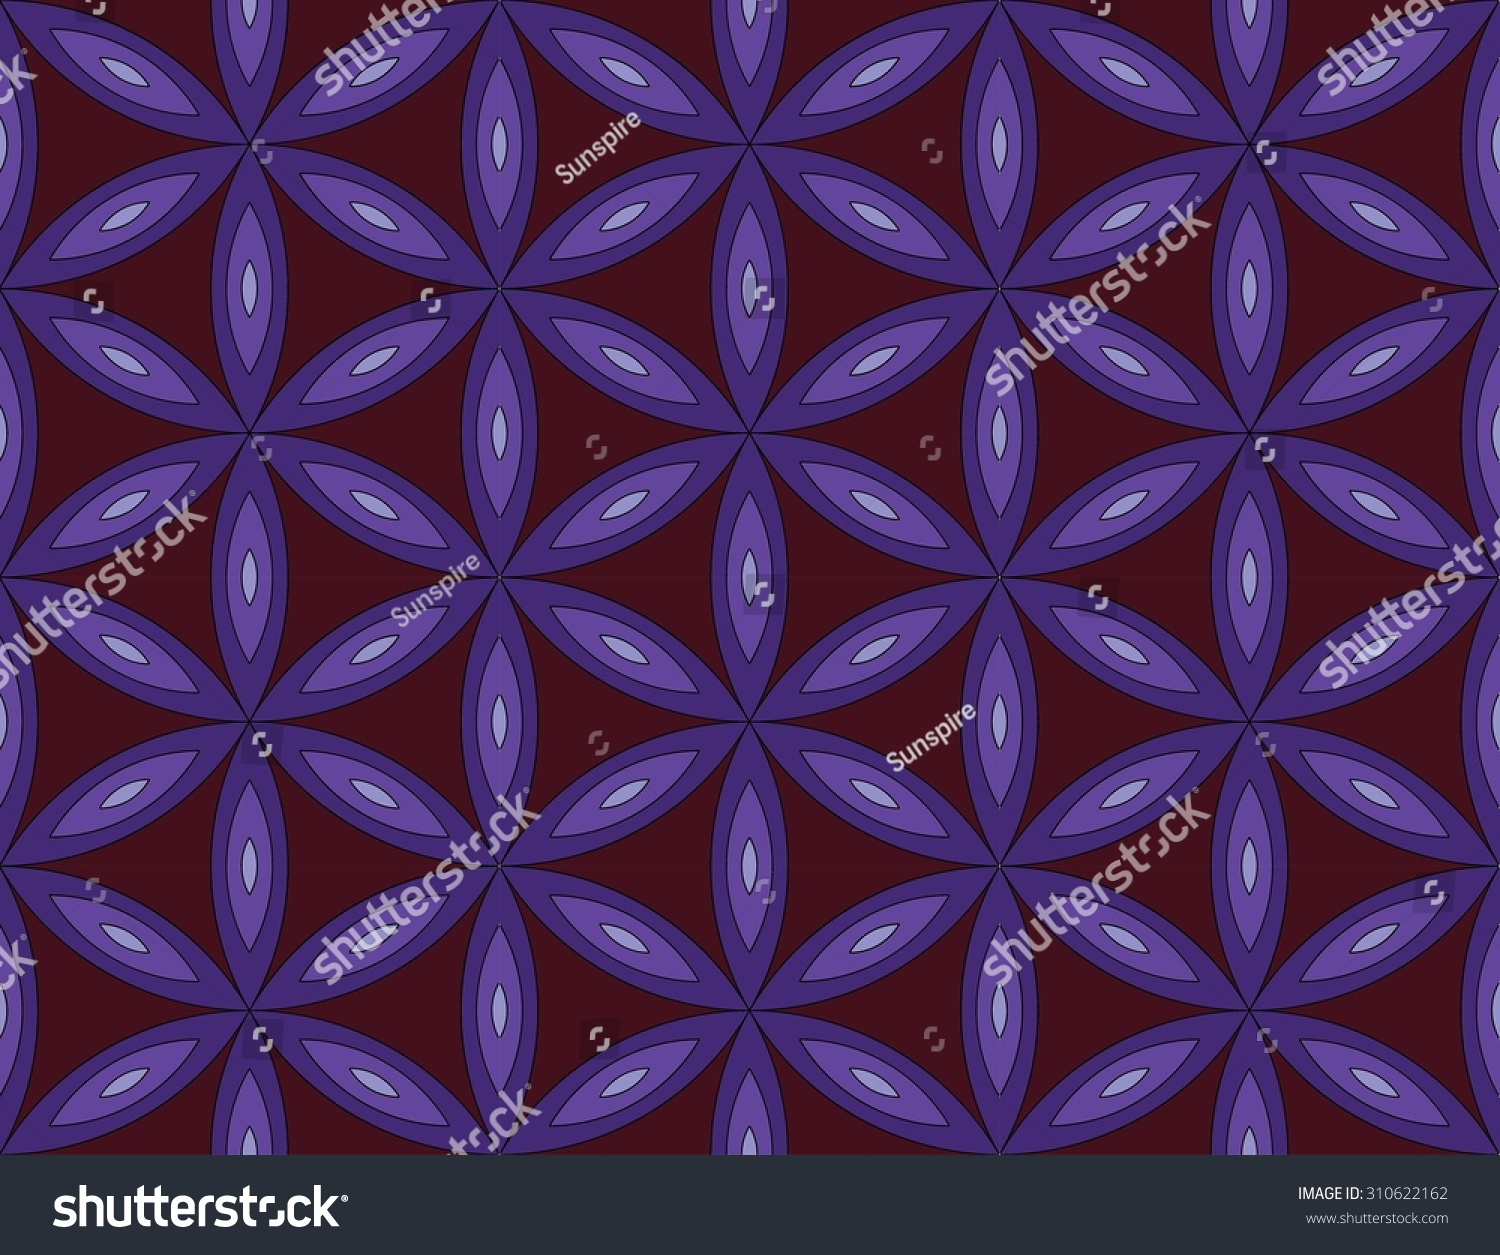 Bed sheet designs texture - Vector Modern Seamless Pattern Sacred Geometry Colorful Background Flower Of Life Textile Print